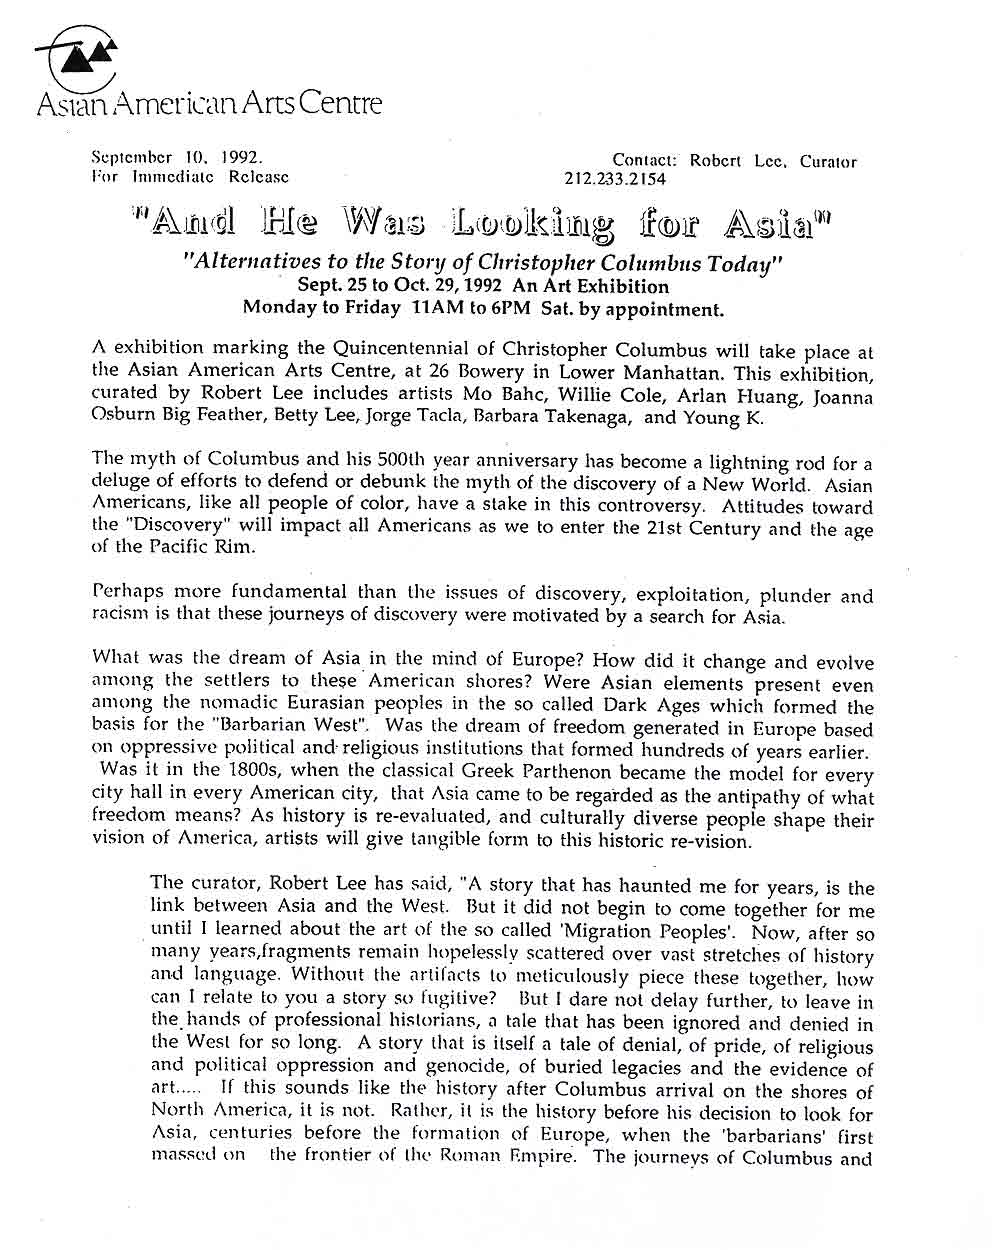 And He Was Looking For Asia, postcard, press release, pg 1